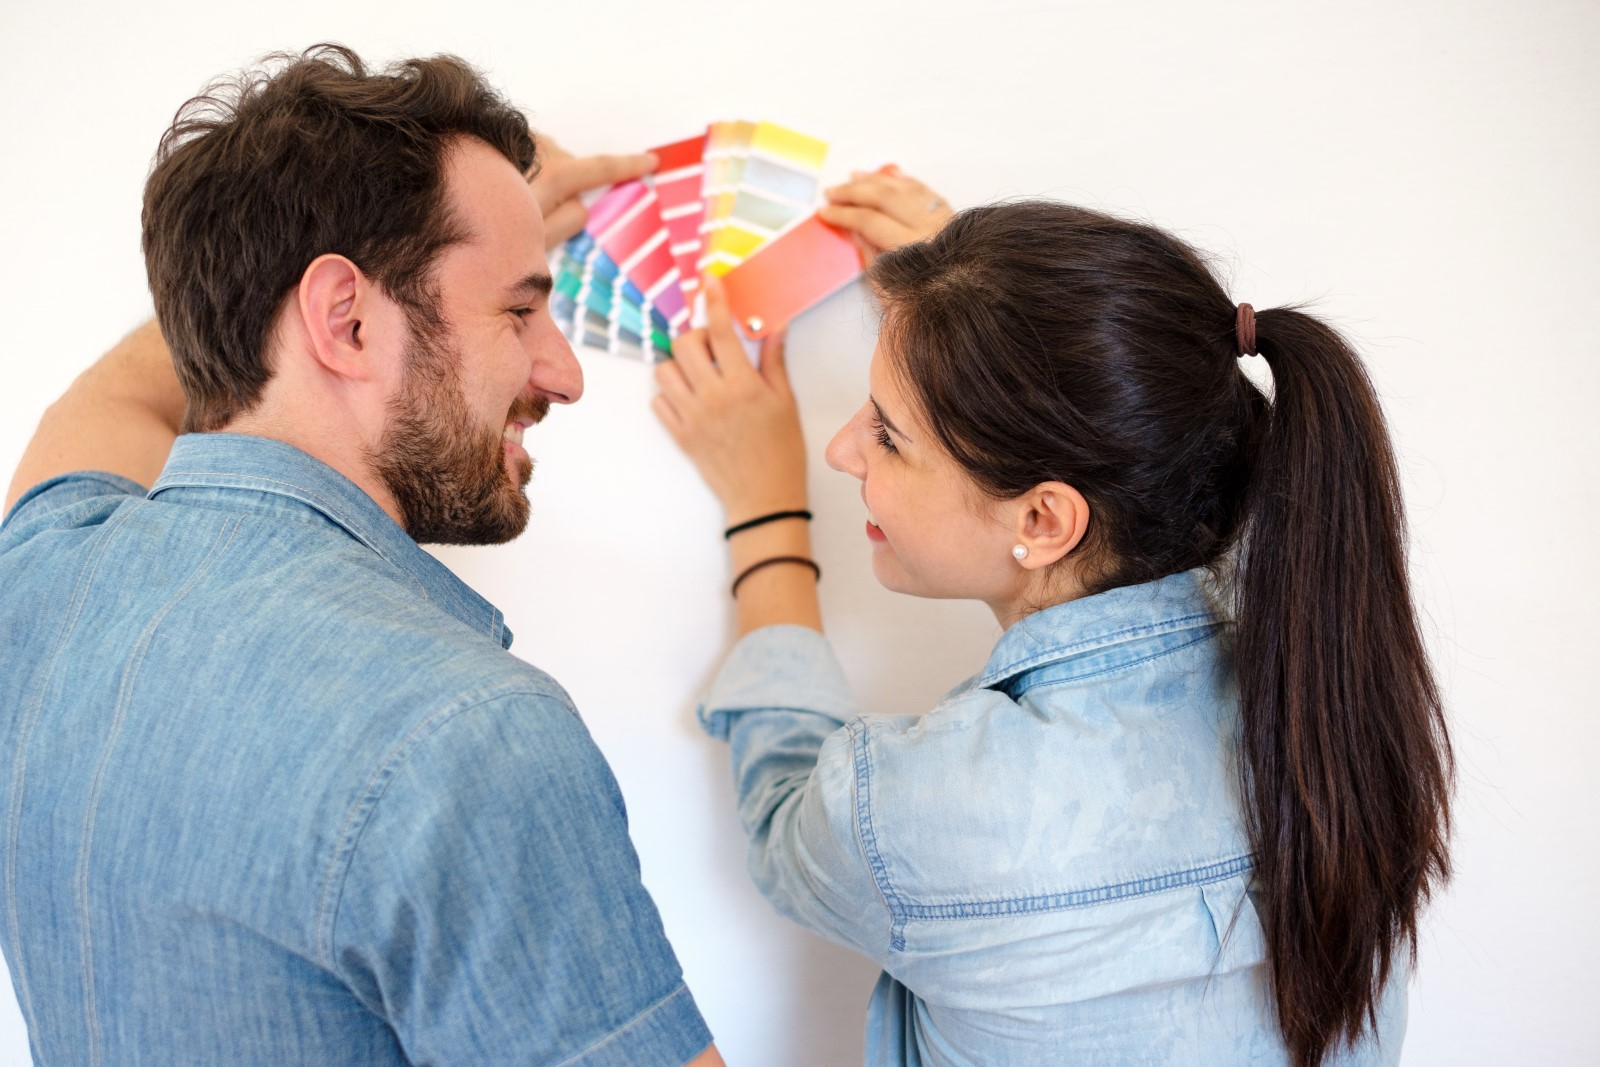 couple choosing paint colors in an effort to build equity in their home